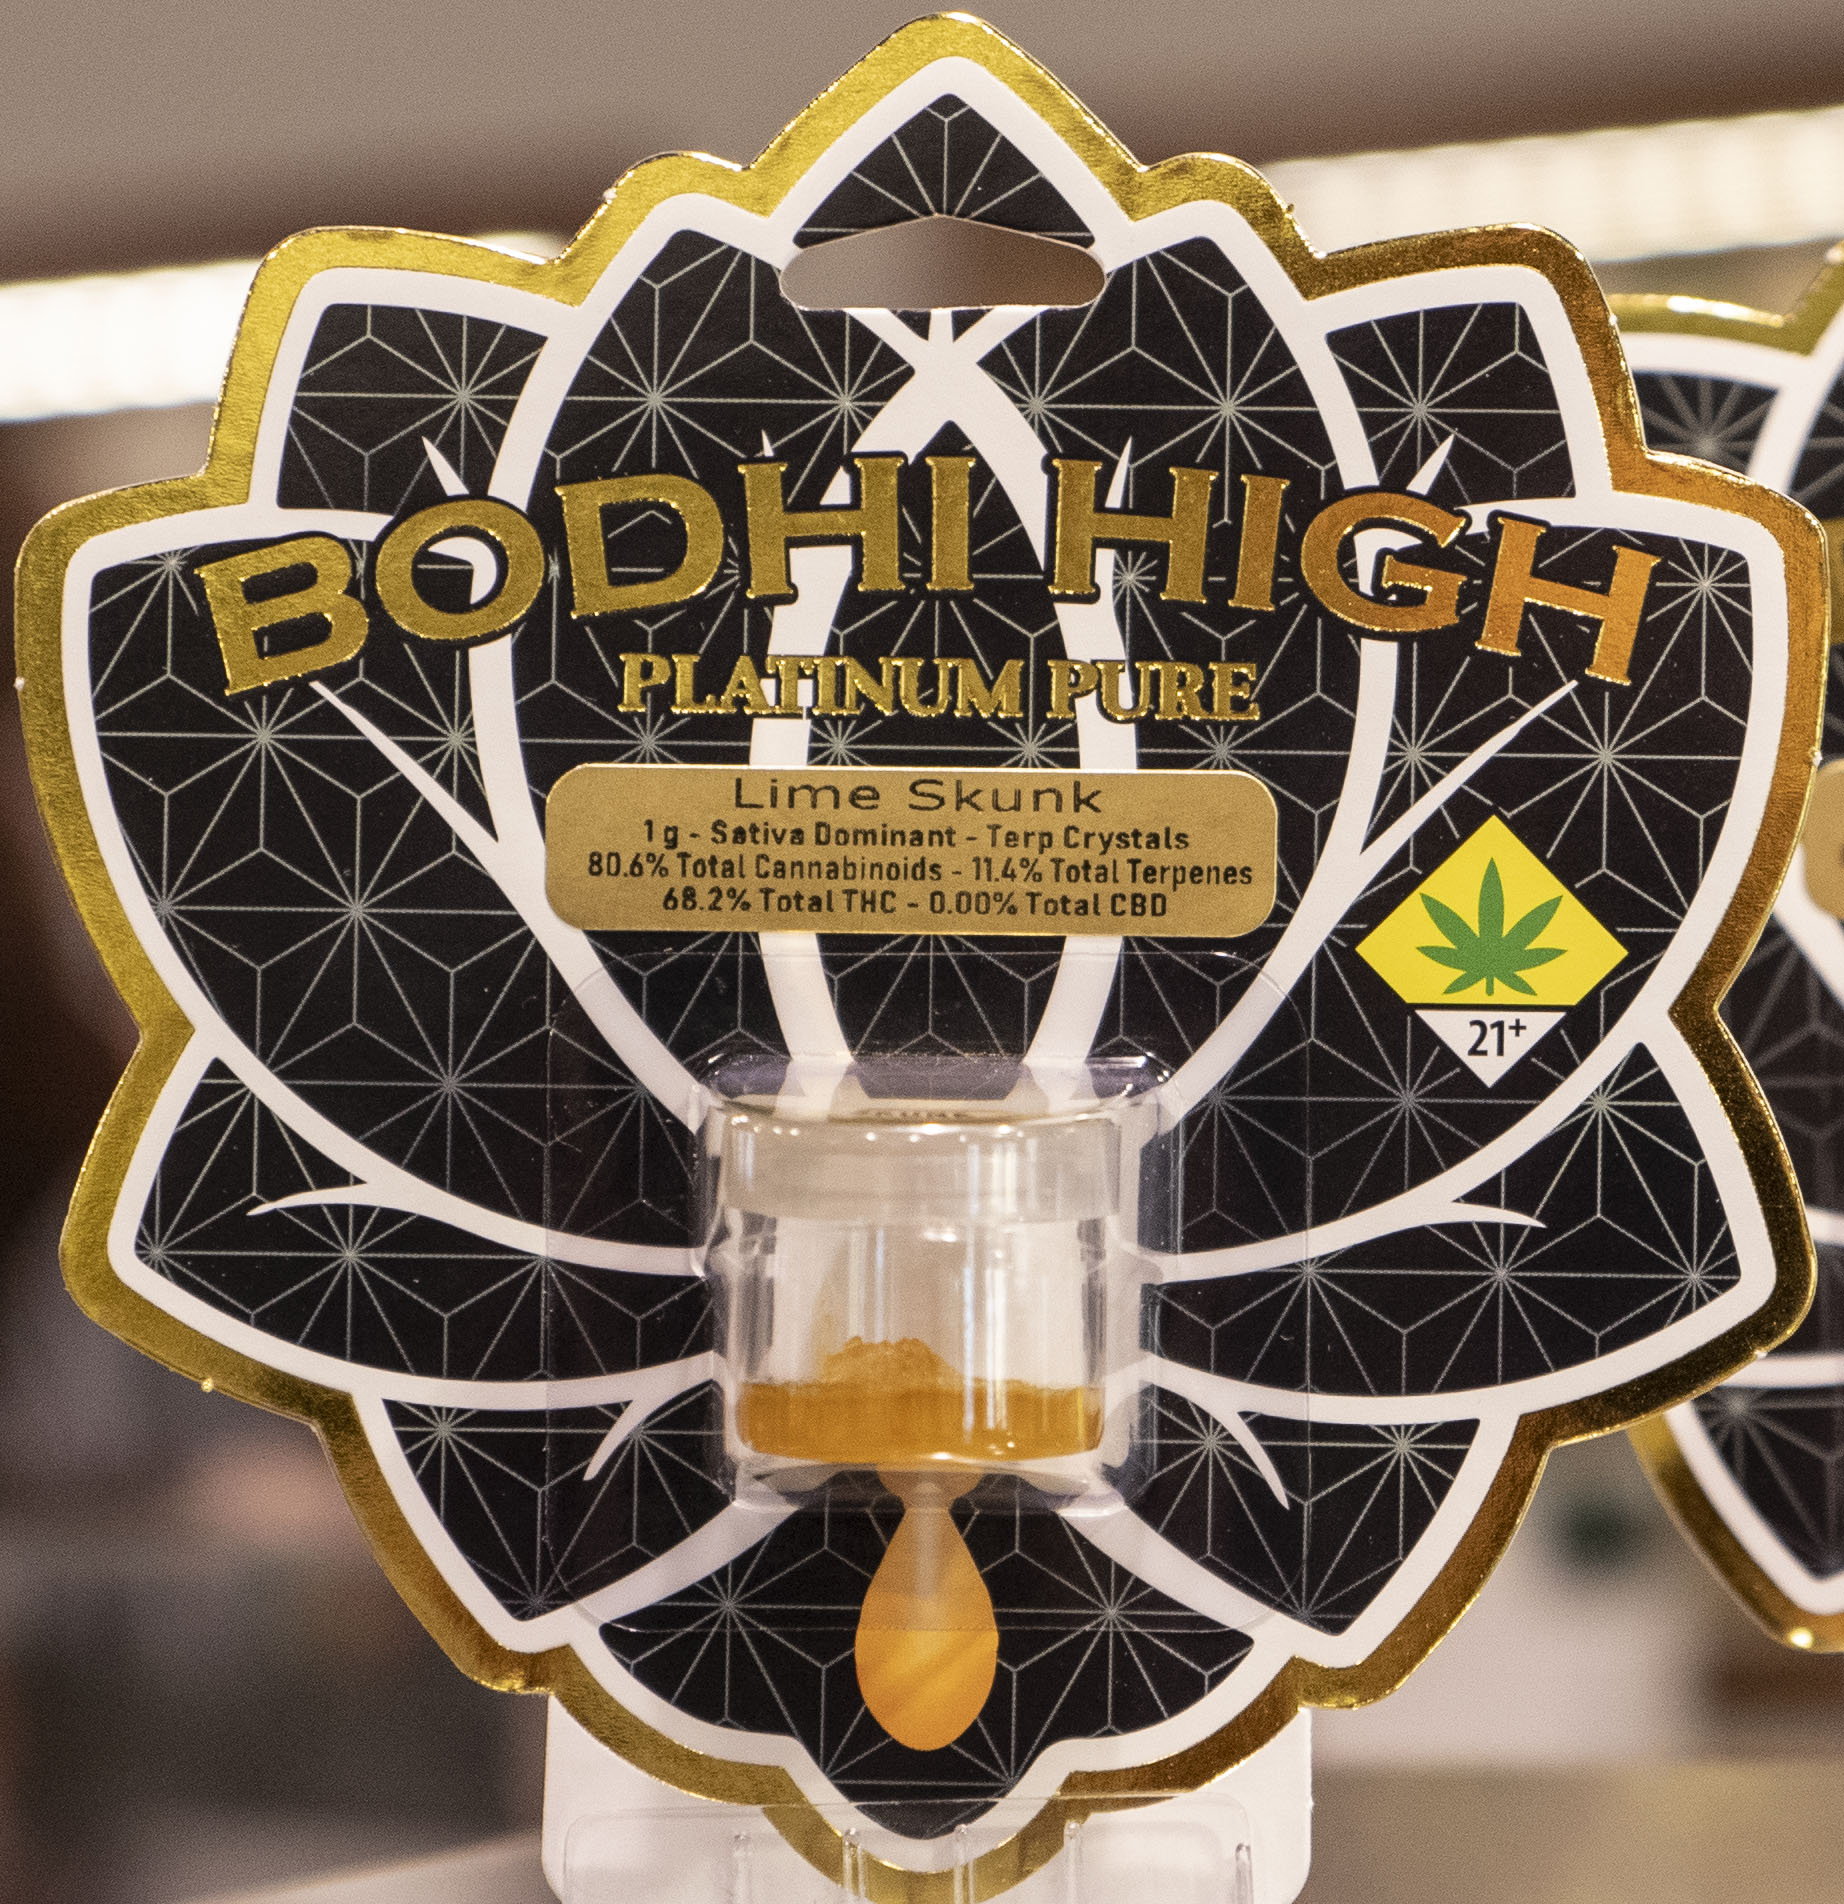 The Budtender's Review Corner: Lime Skunk from Bodhi High's Platinum Pure